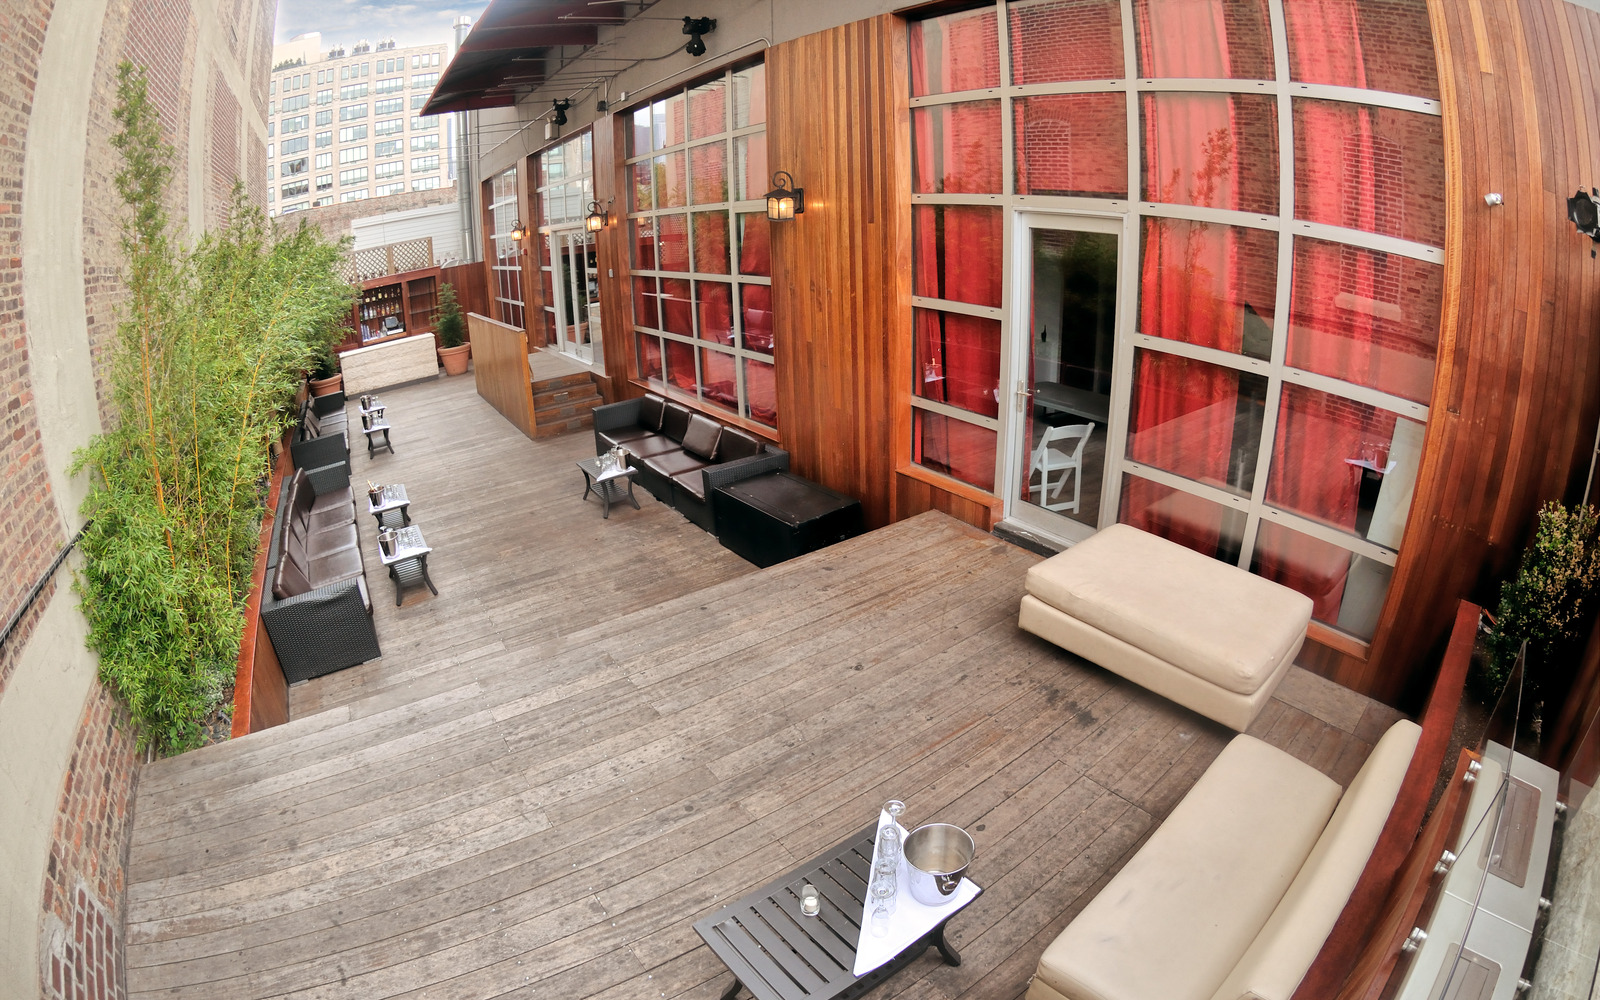 Photo #11 The Garden Terrace (Outdoor Space with Sound & Bar) at Hudson Terrace